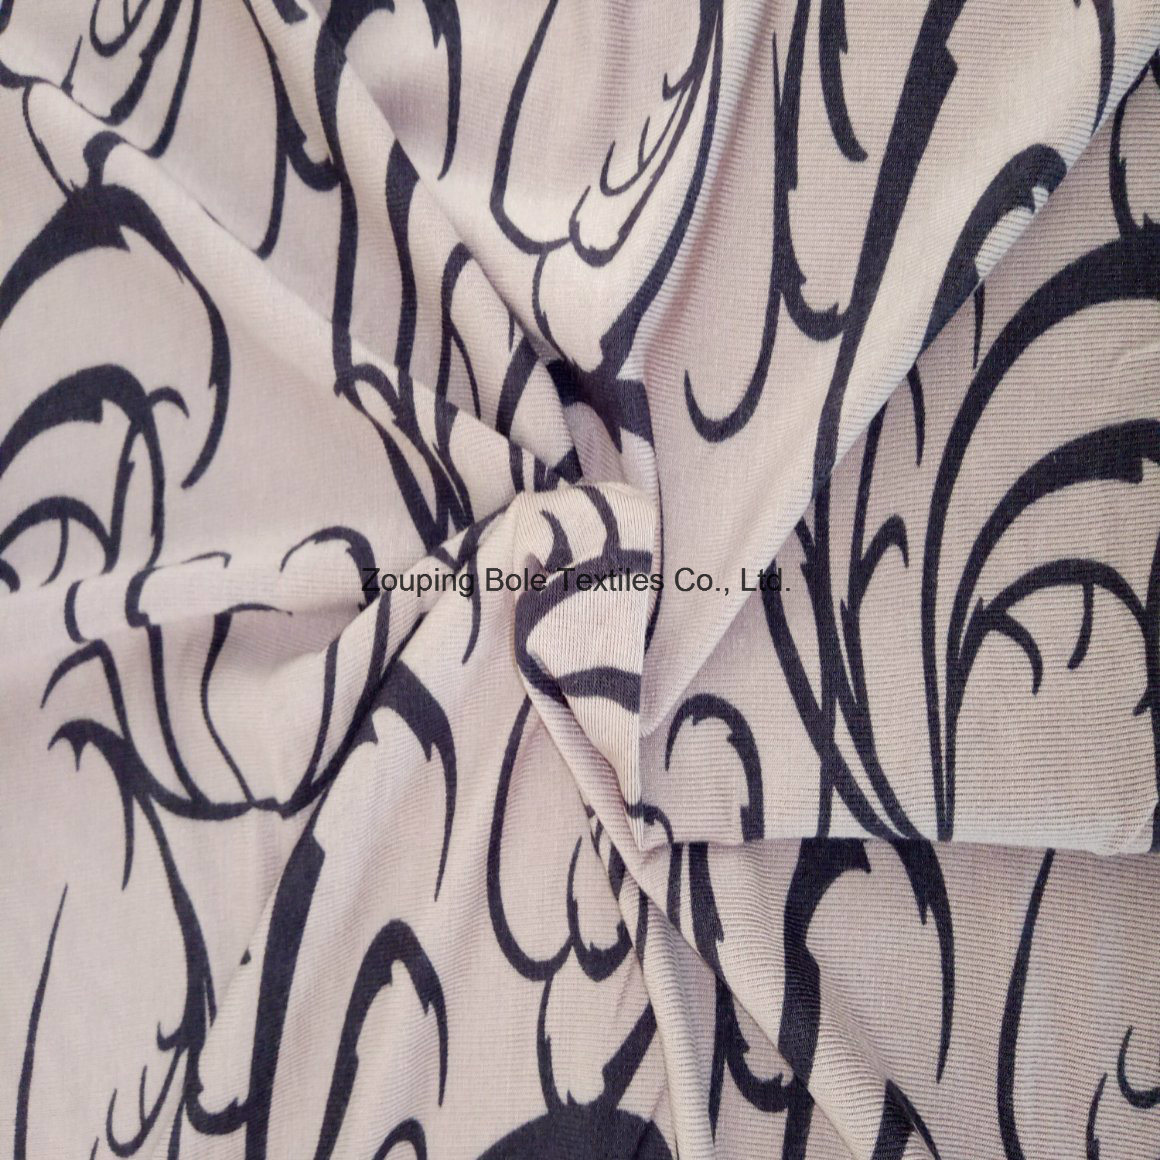 Knitting Fabric/Reactive Printed Stretch Fabric/Bamboo Fiber Cloth/Bamboo Fiber Fabric